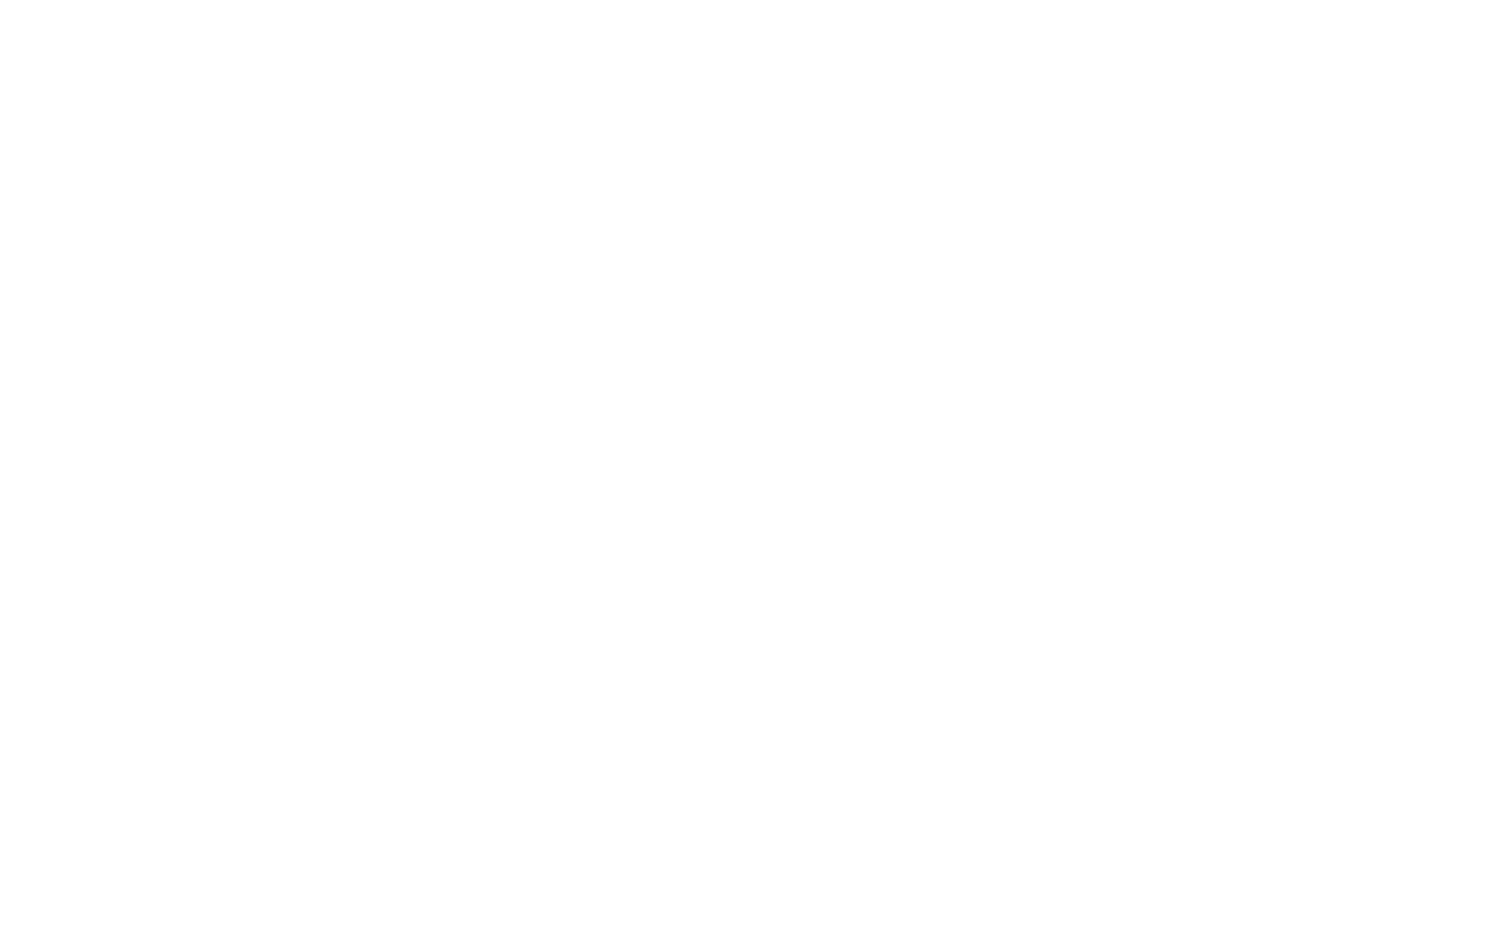 The Art of Paddling